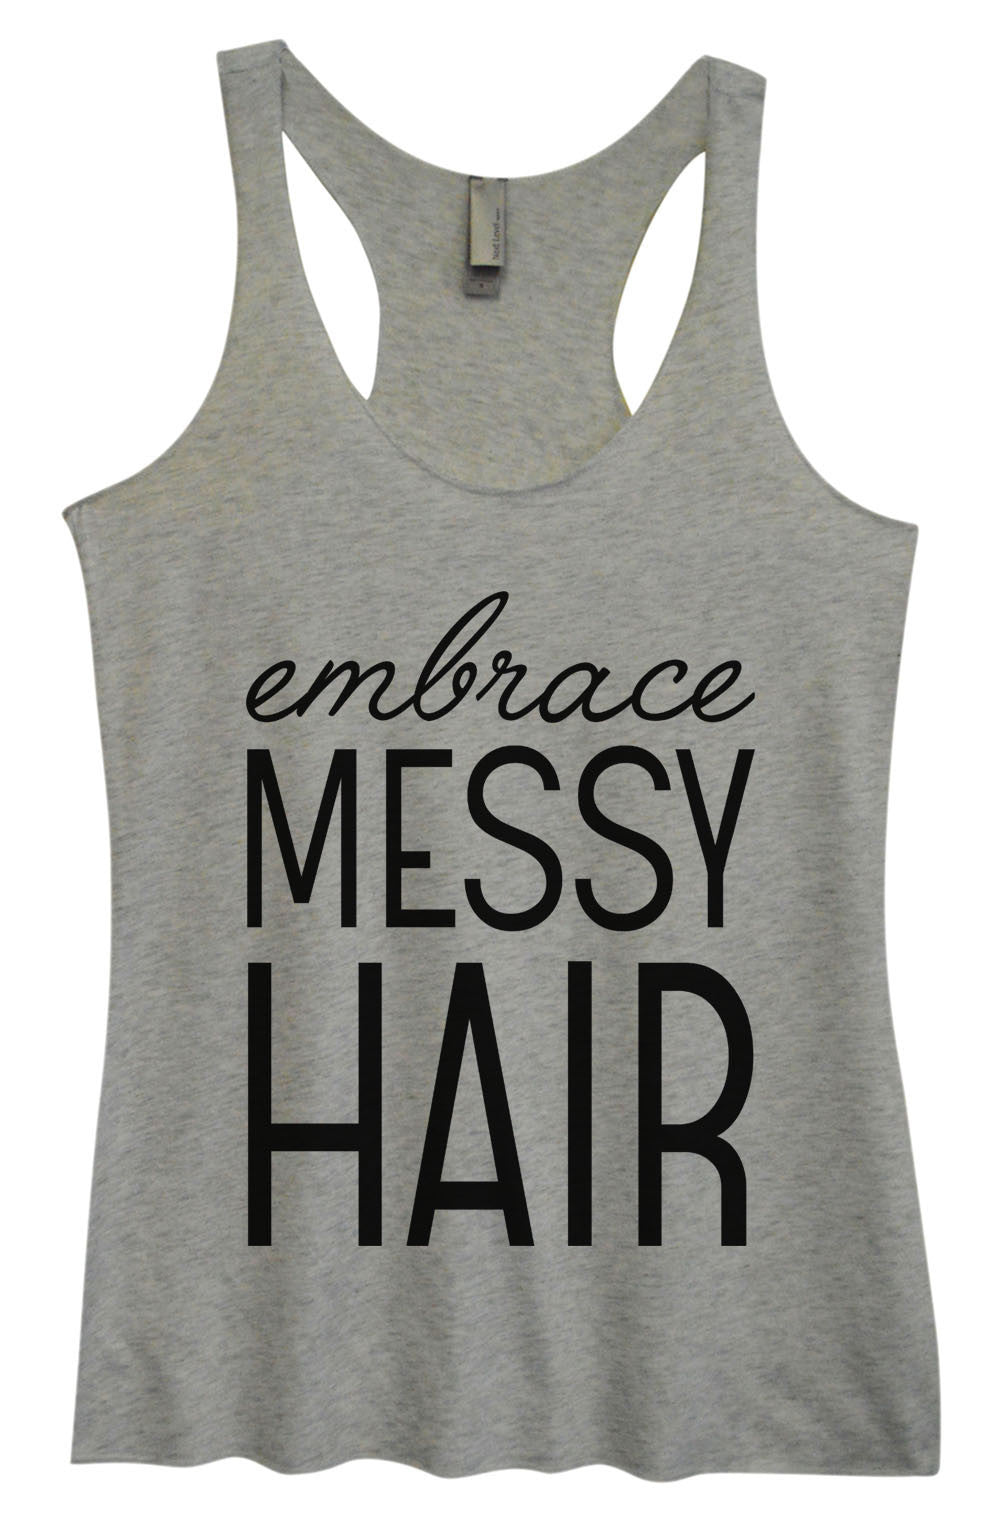 Womens Fashion Triblend Tank Top - Embrace Messy Hair - Tri-940 - Funny Shirts Tank Tops Burnouts and Triblends  - 2